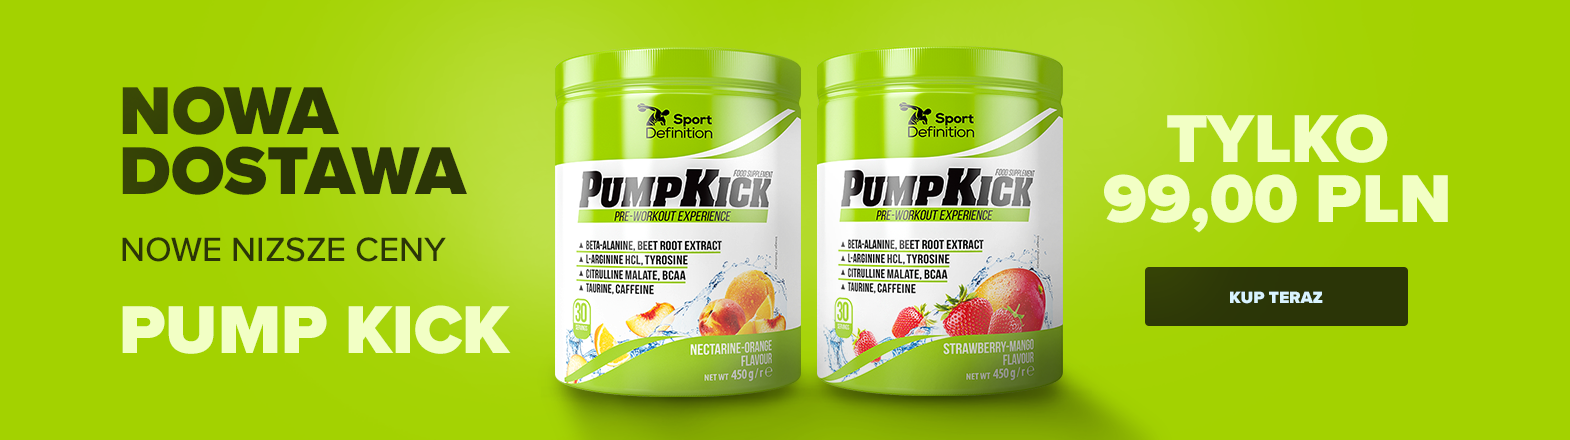 Sport Definition  Pump Kick 450g tylko 99 PLN!